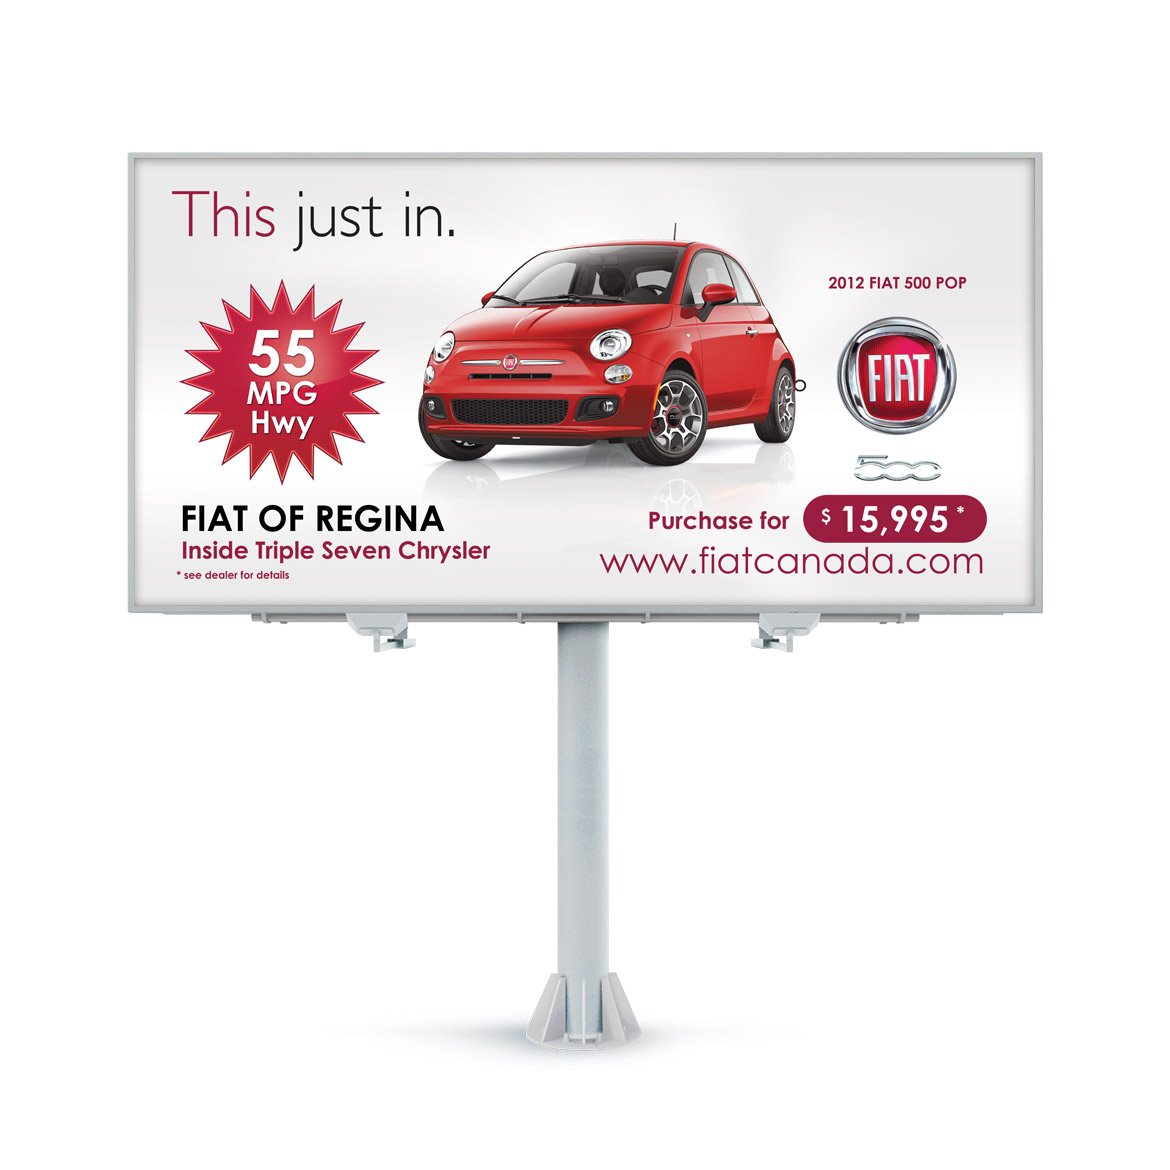 Billboard-Design-Fiat-Canada-Fiat-500-2012